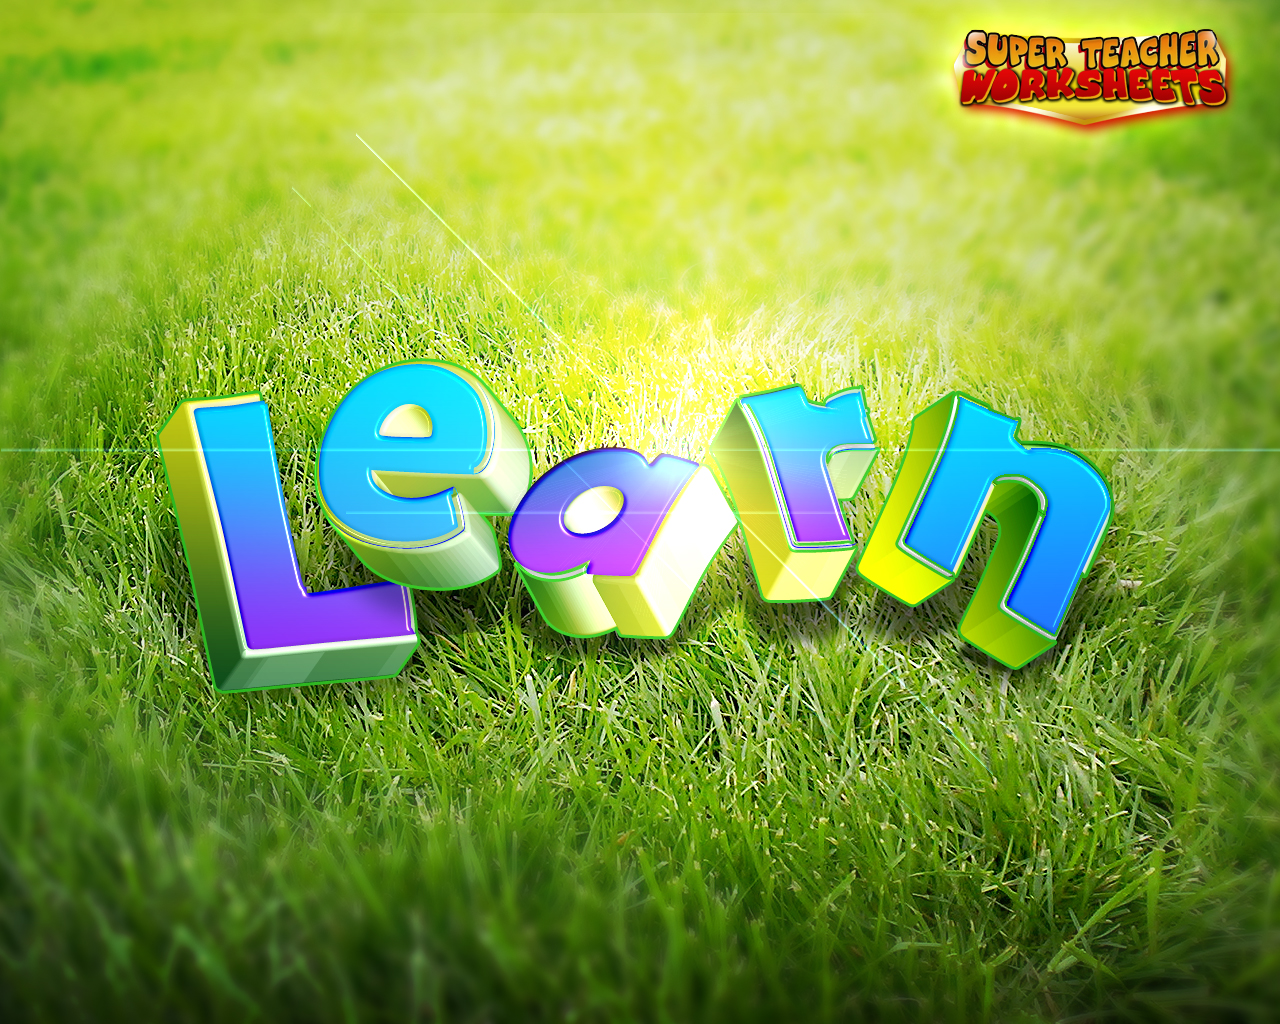 Stw wallpaper background graphics stw learn wallpaper robcynllc Gallery